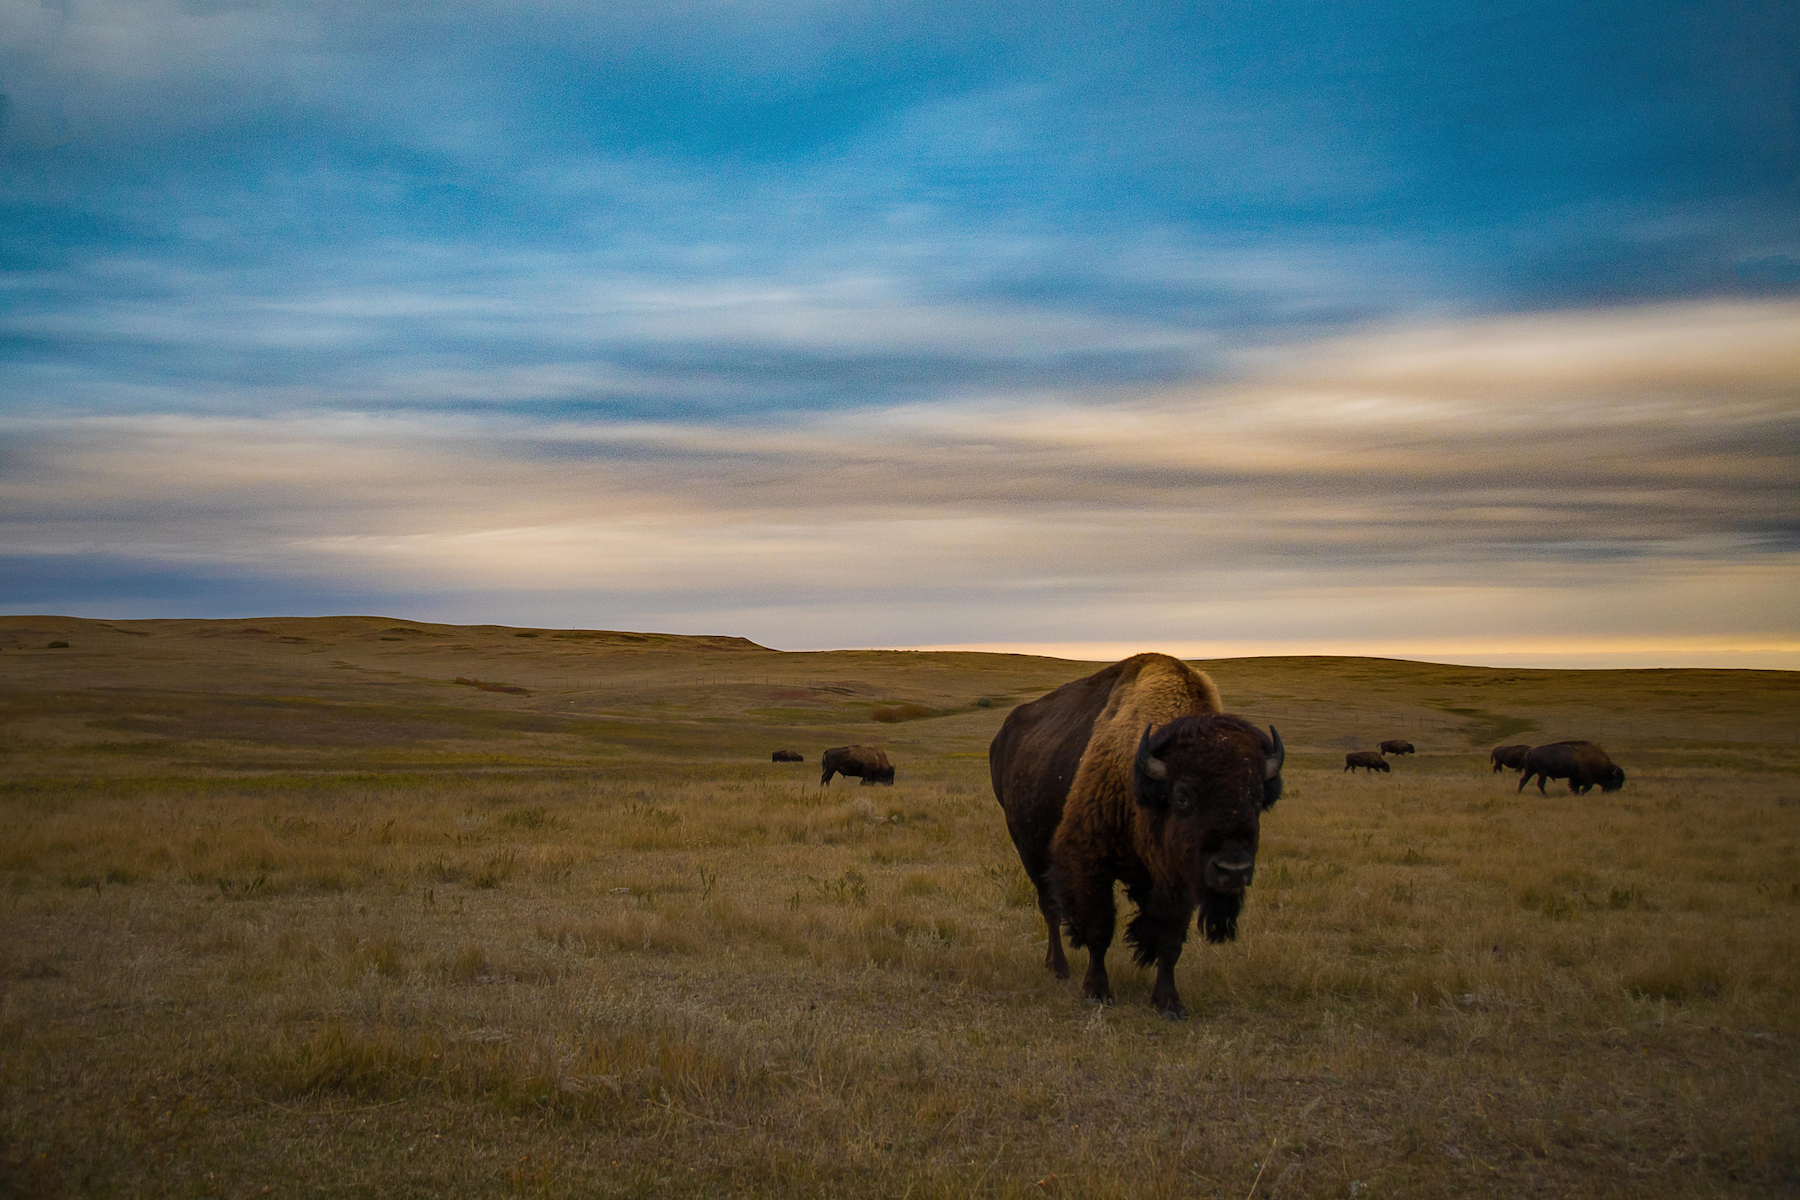 Throughout both the North and South block of Theodore Roosevelt National park are wild bison that graze the plains and badlands.